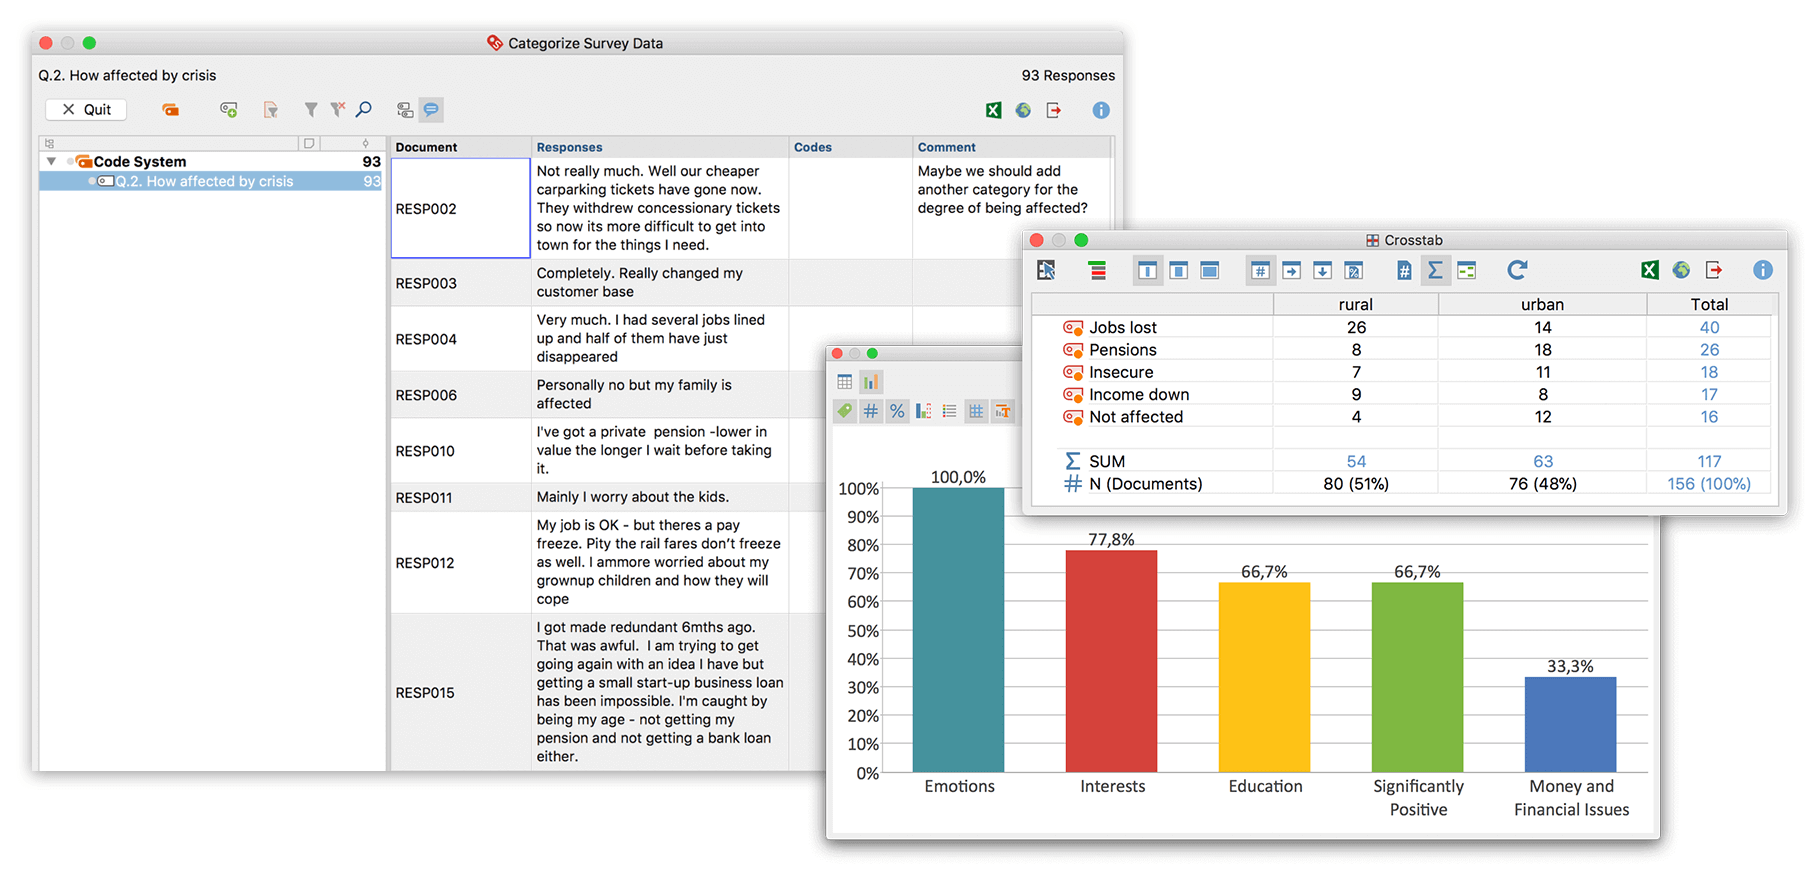 Questionnaire Analysis Software - Powerful and Easy-to-use - MAXQDA